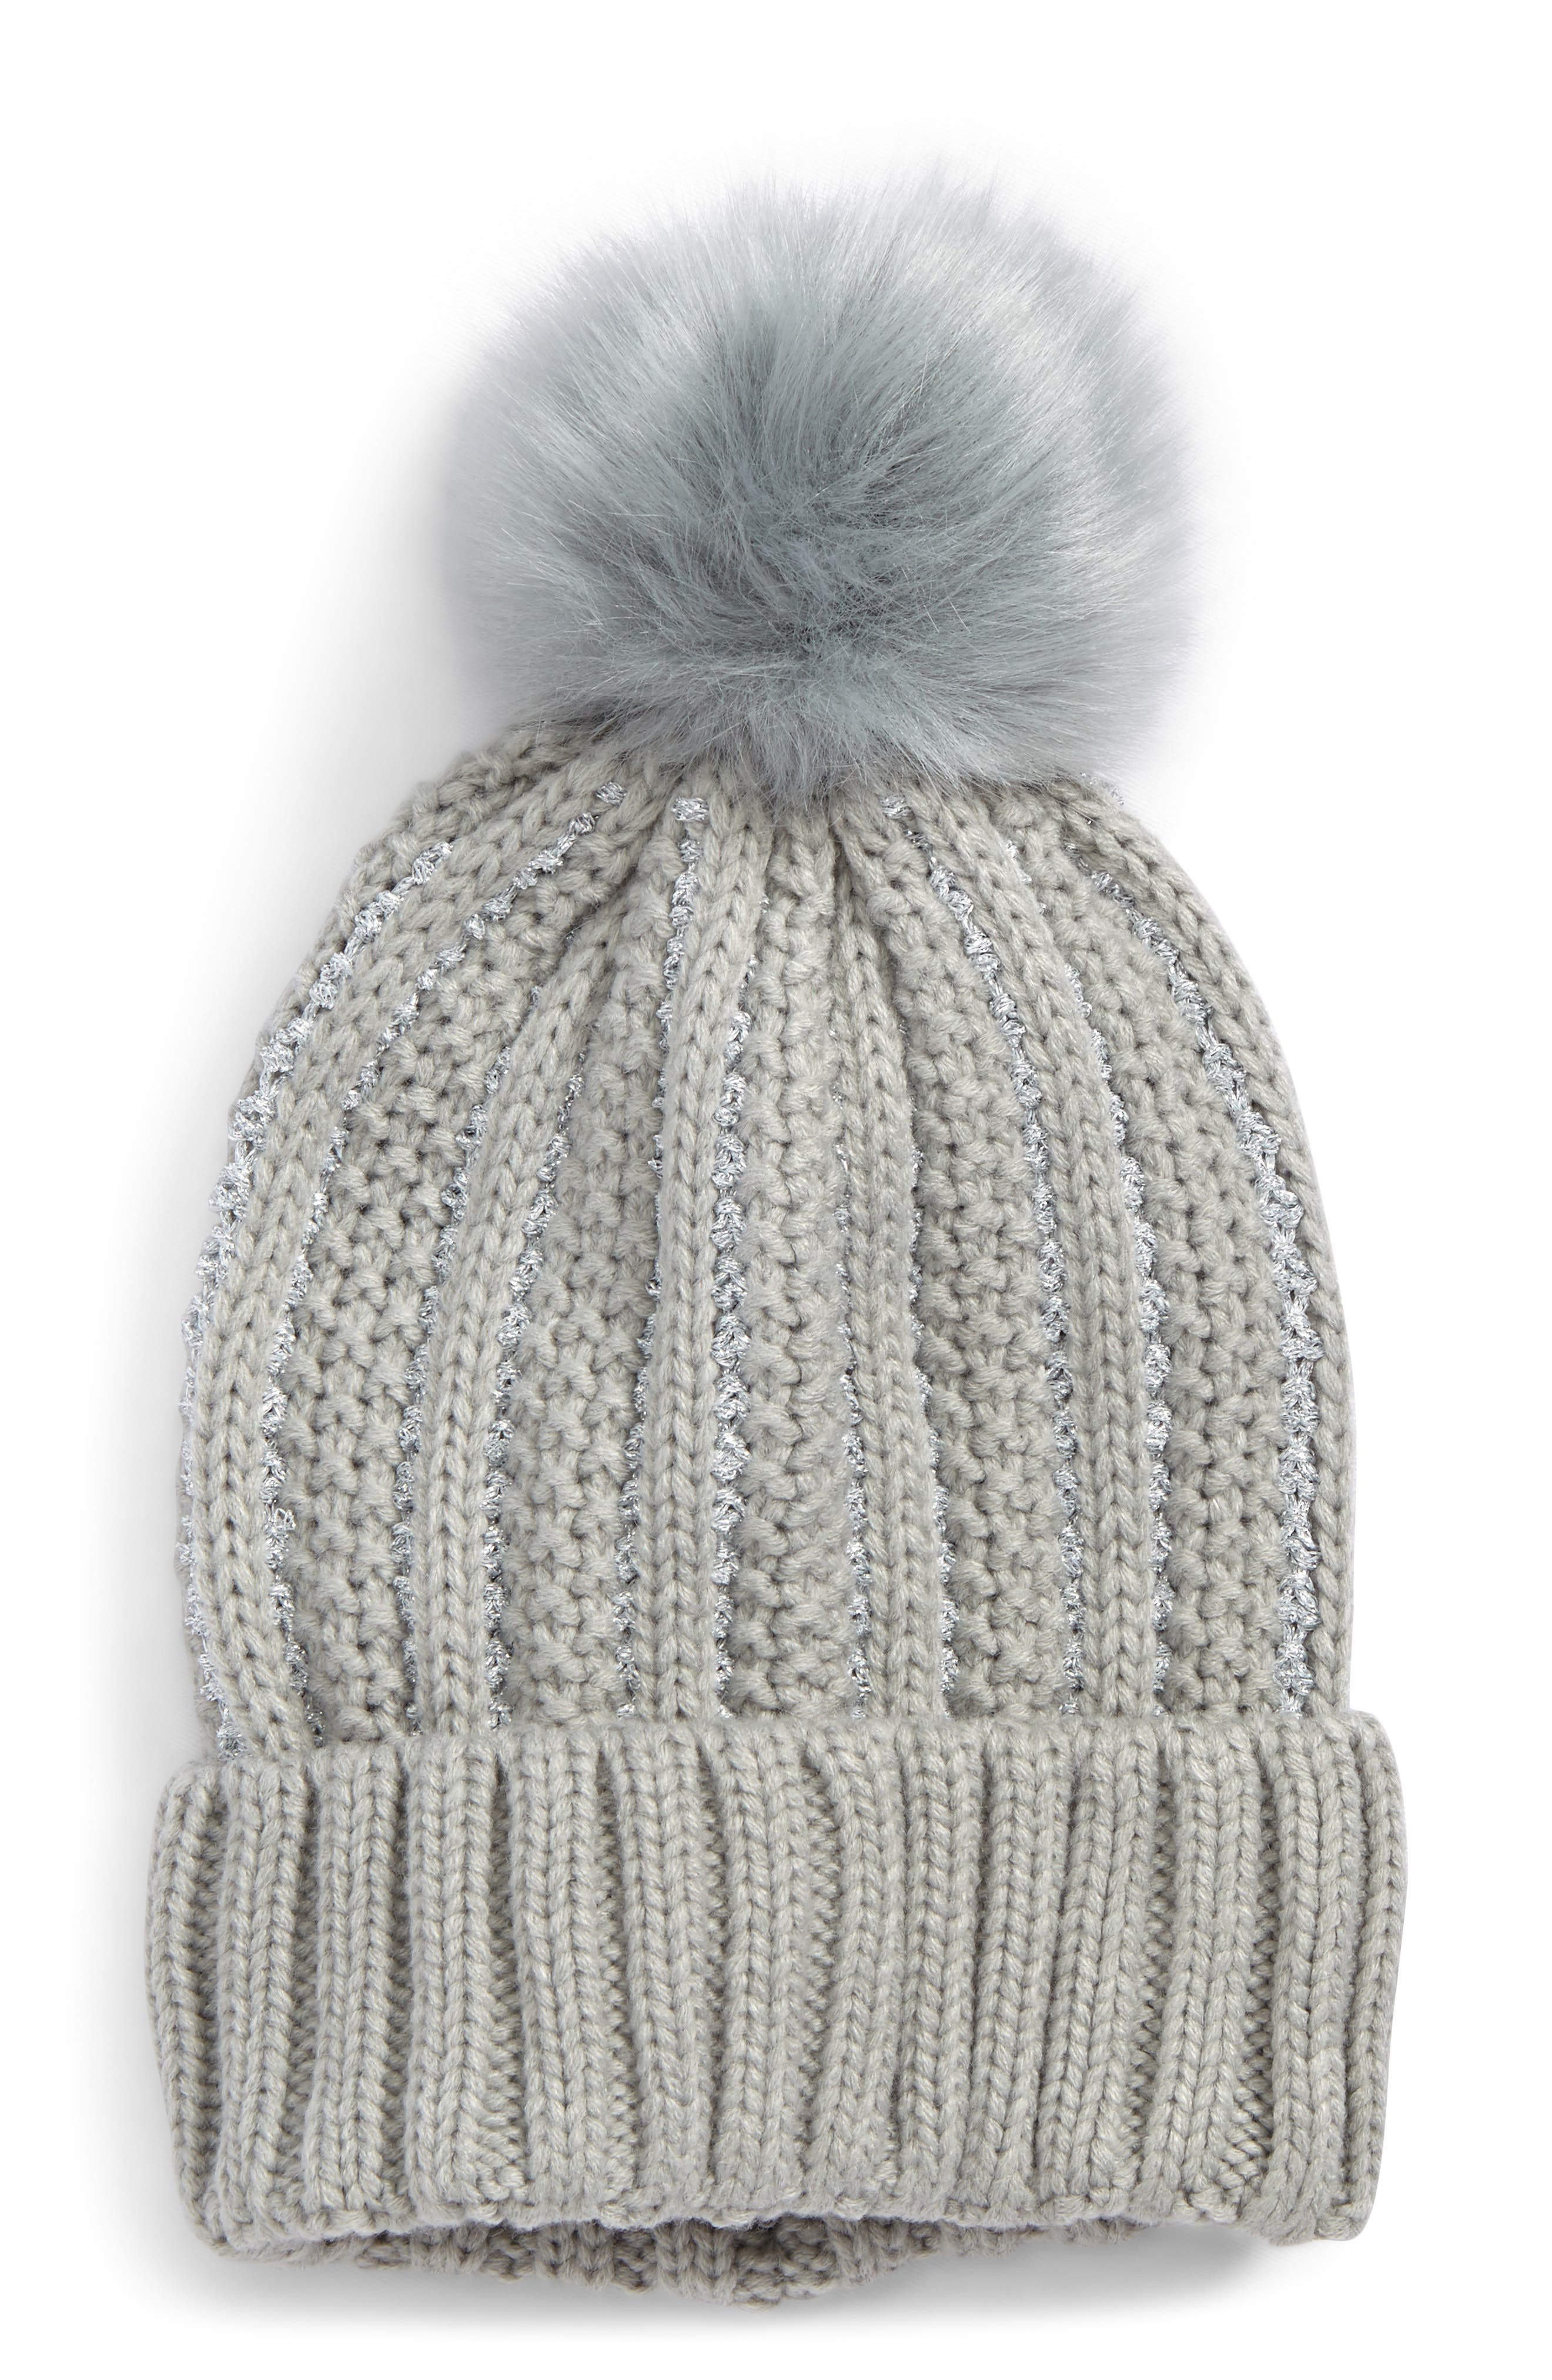 Metallic Knit Beanie with Faux Fur Pompom,                         Main,                         color, 020